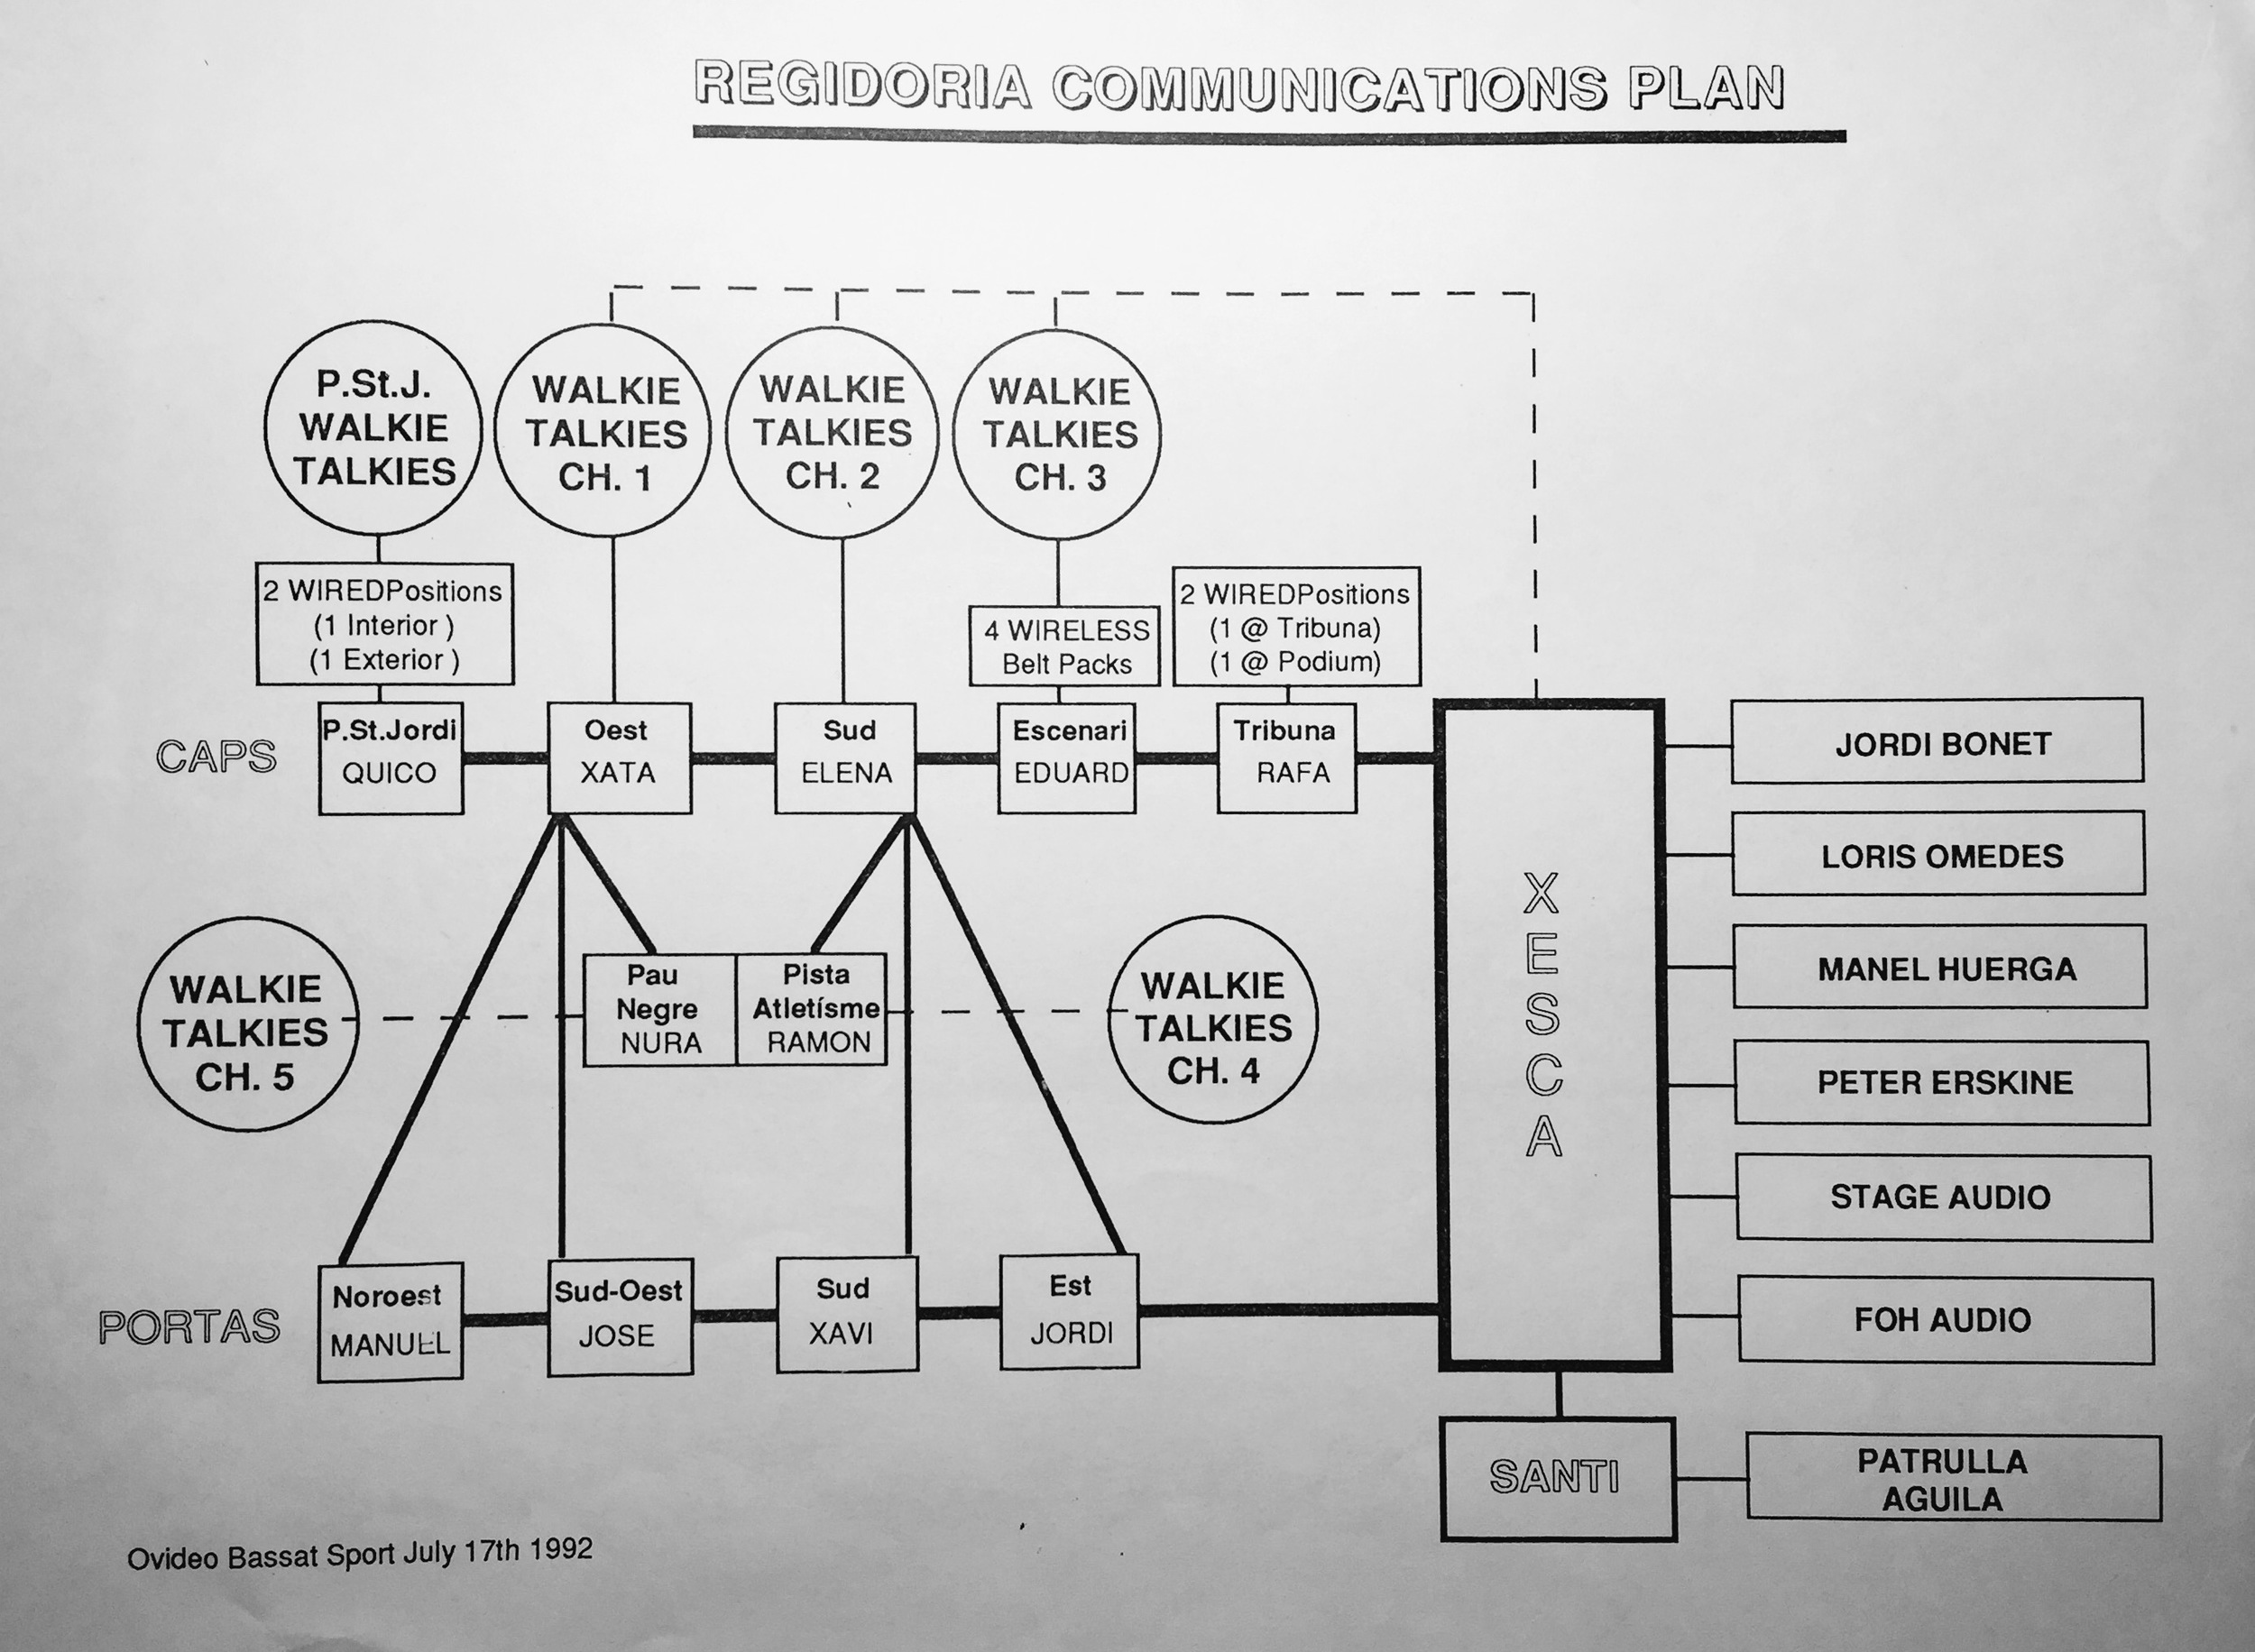 Conceptual plan by the Stage managers on how the intercom system should work. I wish all production teams would create such a clear plan for comms.